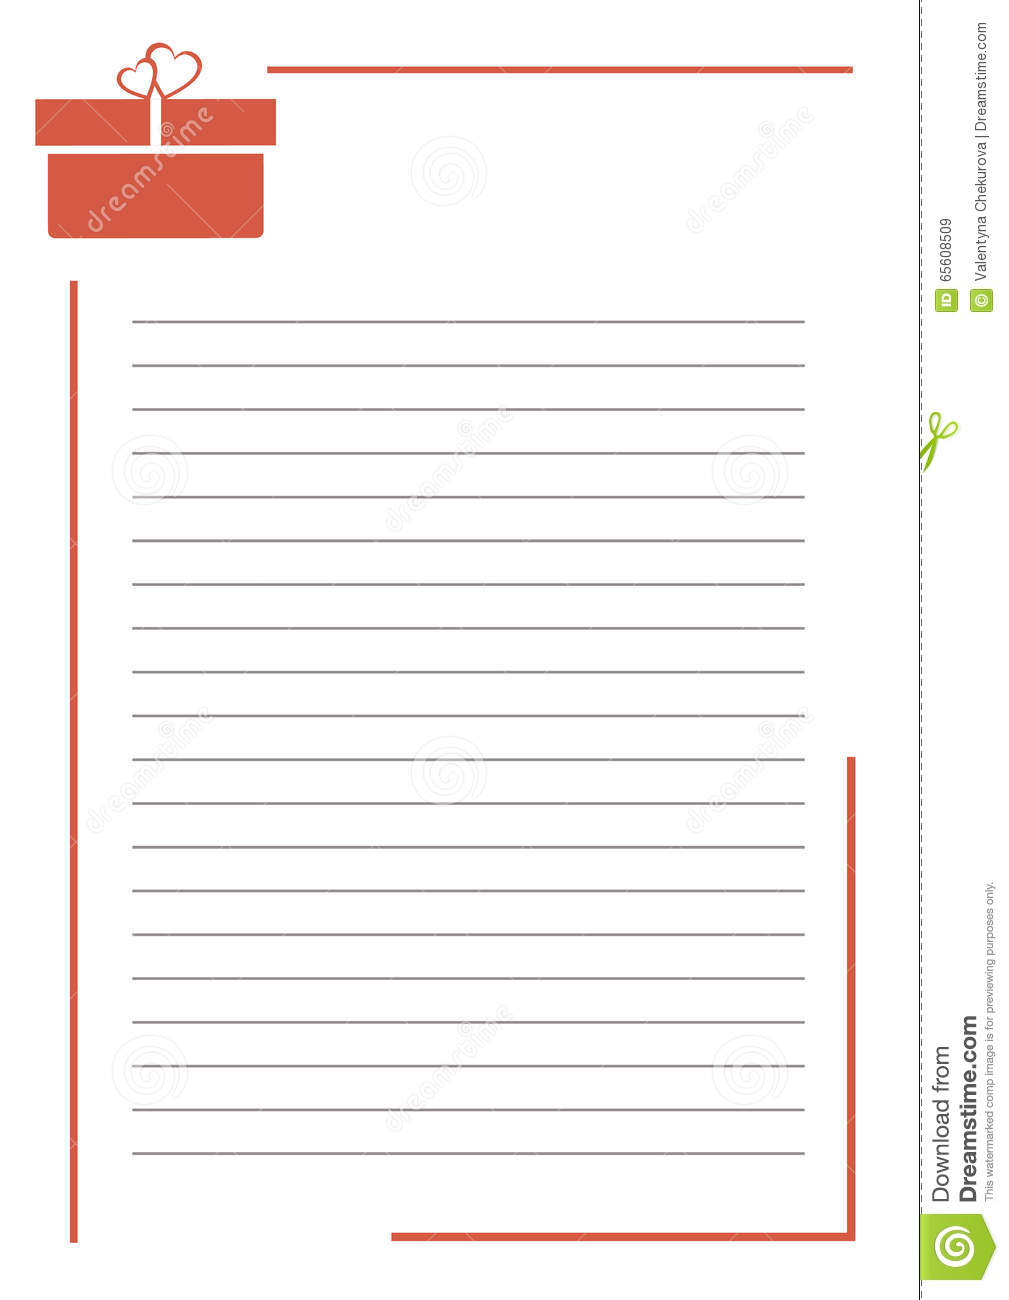 005 Note Cards For Research Paper Vector Blank Letter Greeting Card White Form Red Gift Box Lines Border Format Size Rare Taking Papers System Example Of Notecards Full